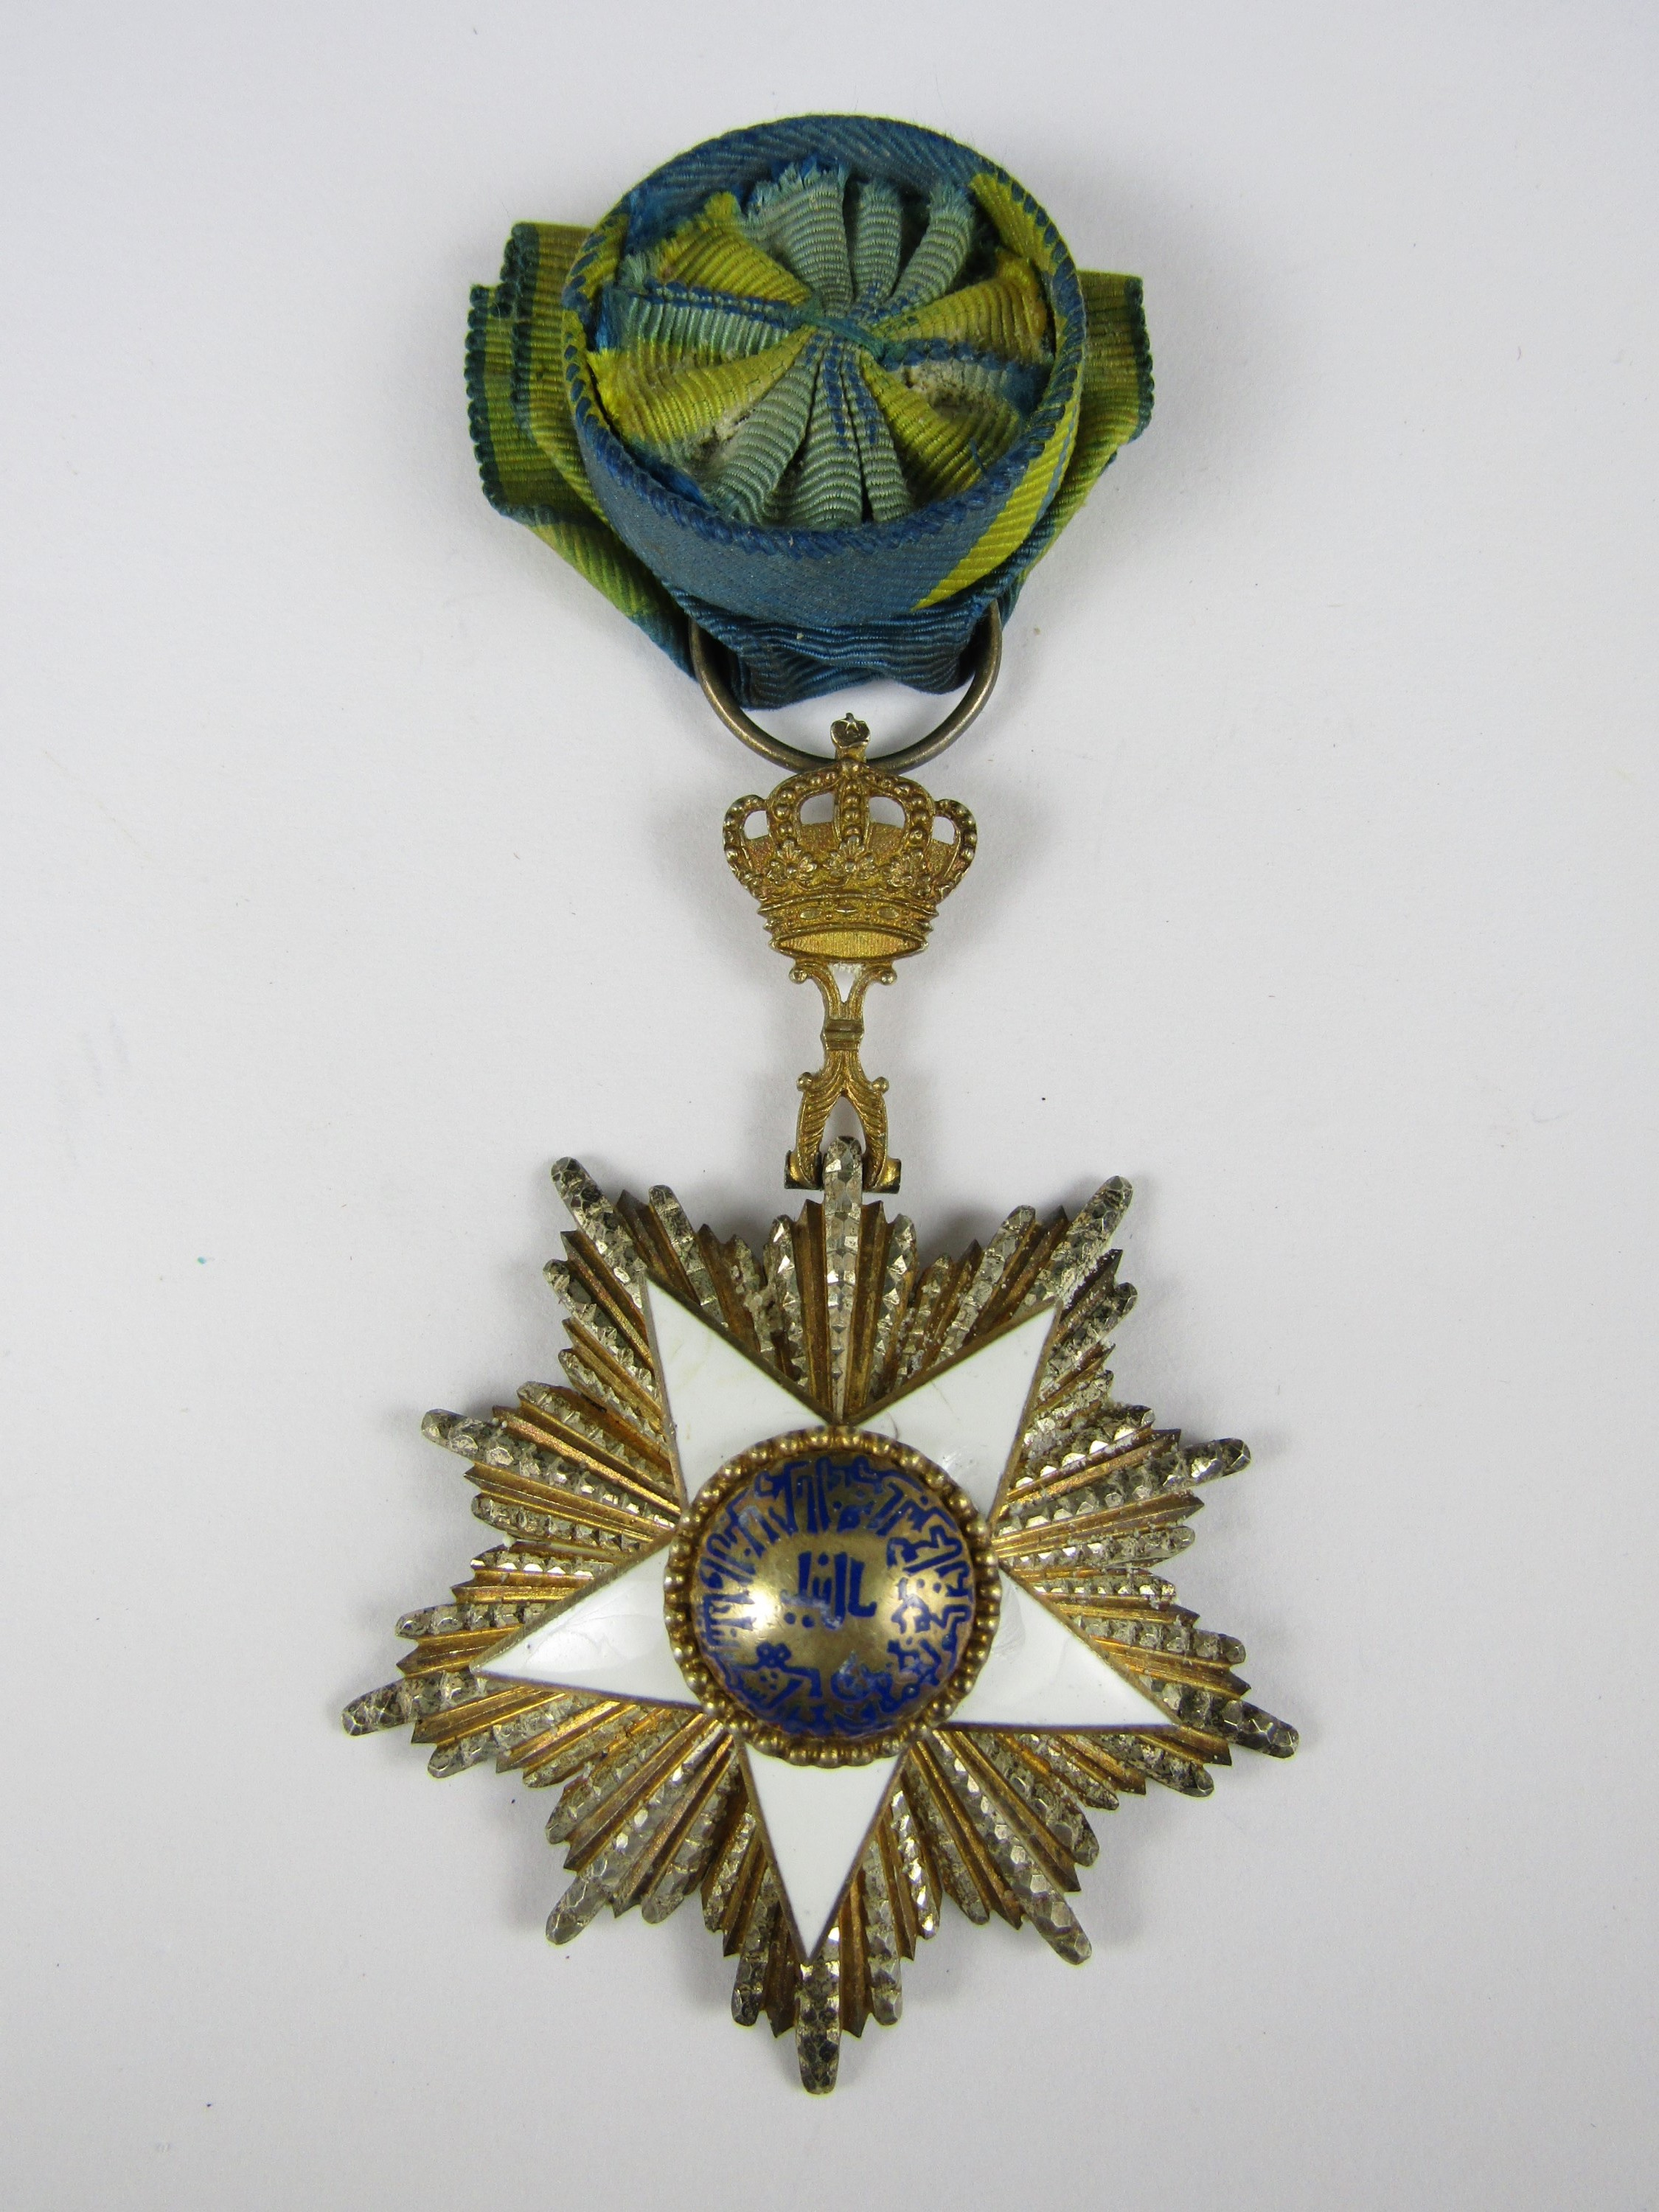 Lot 36 - An Egyptian Order of the Nile by Lattes, circa 1930